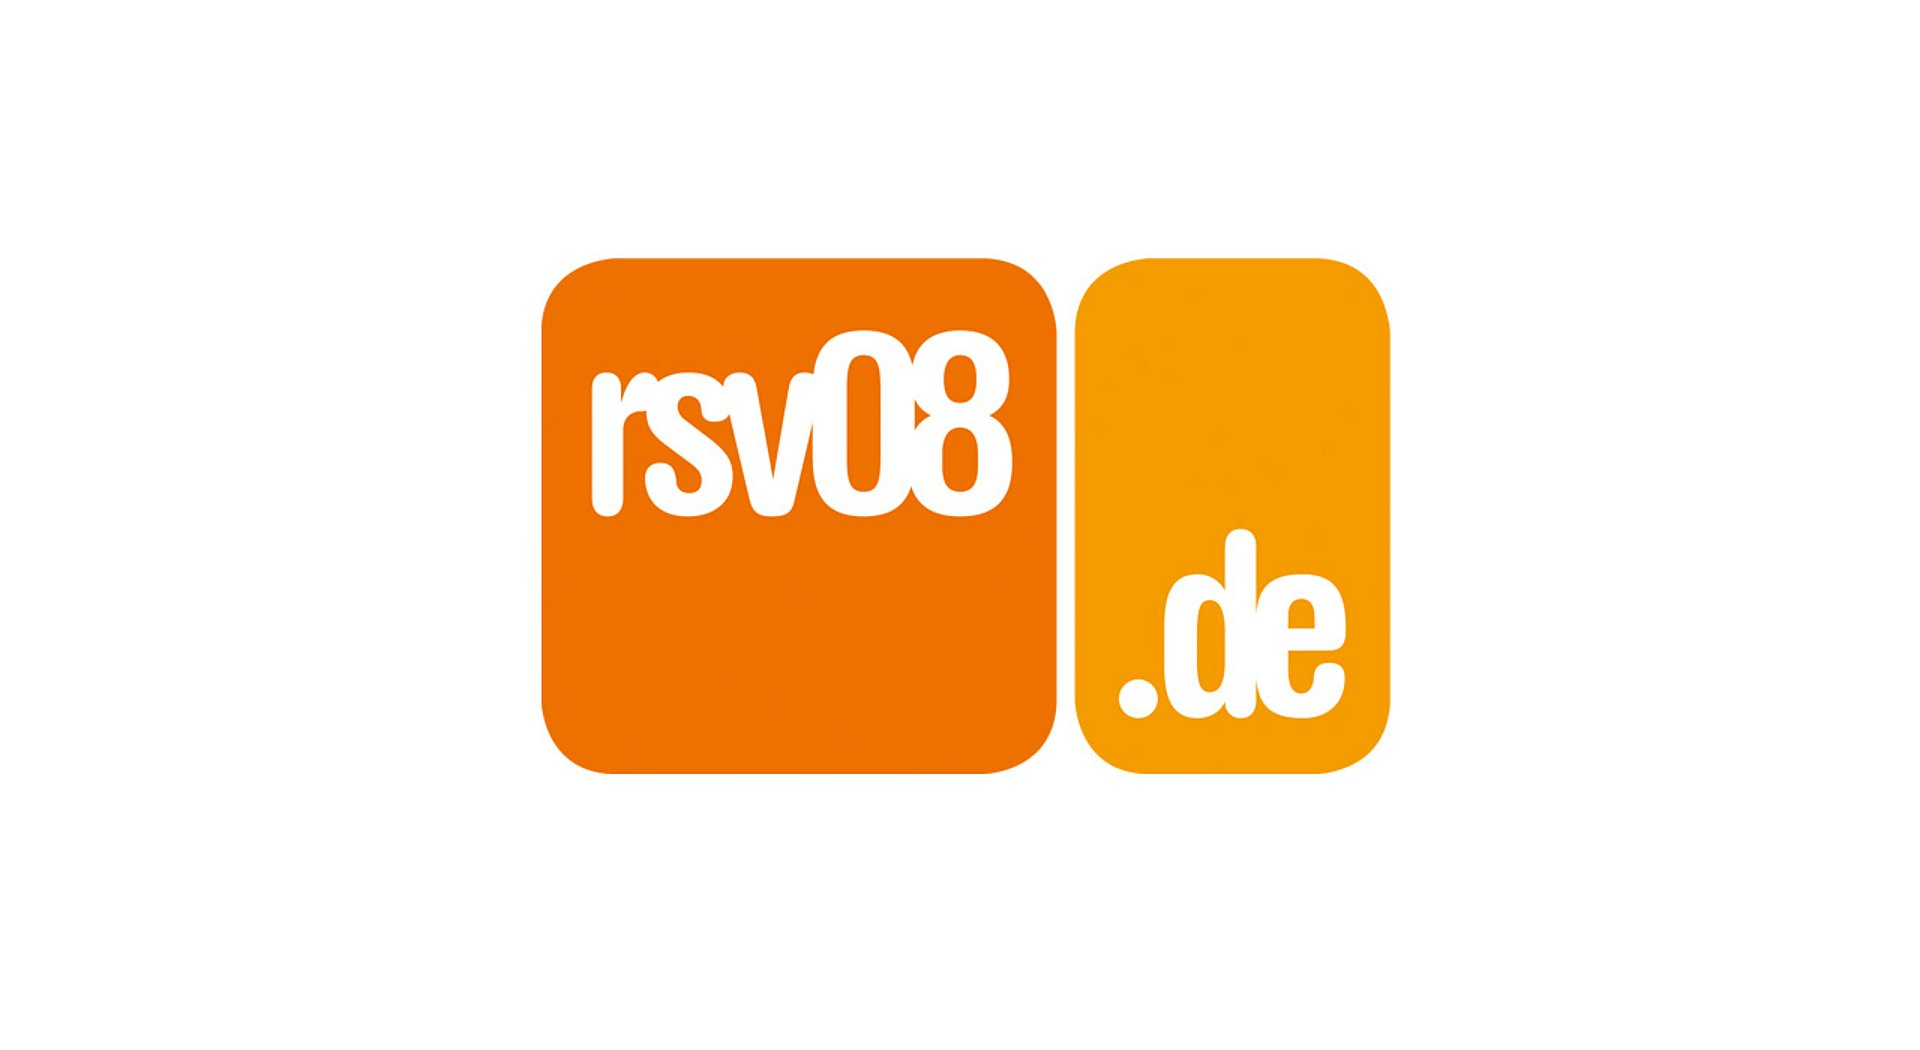 Logo des Richrather Sportverein 08 e.V.